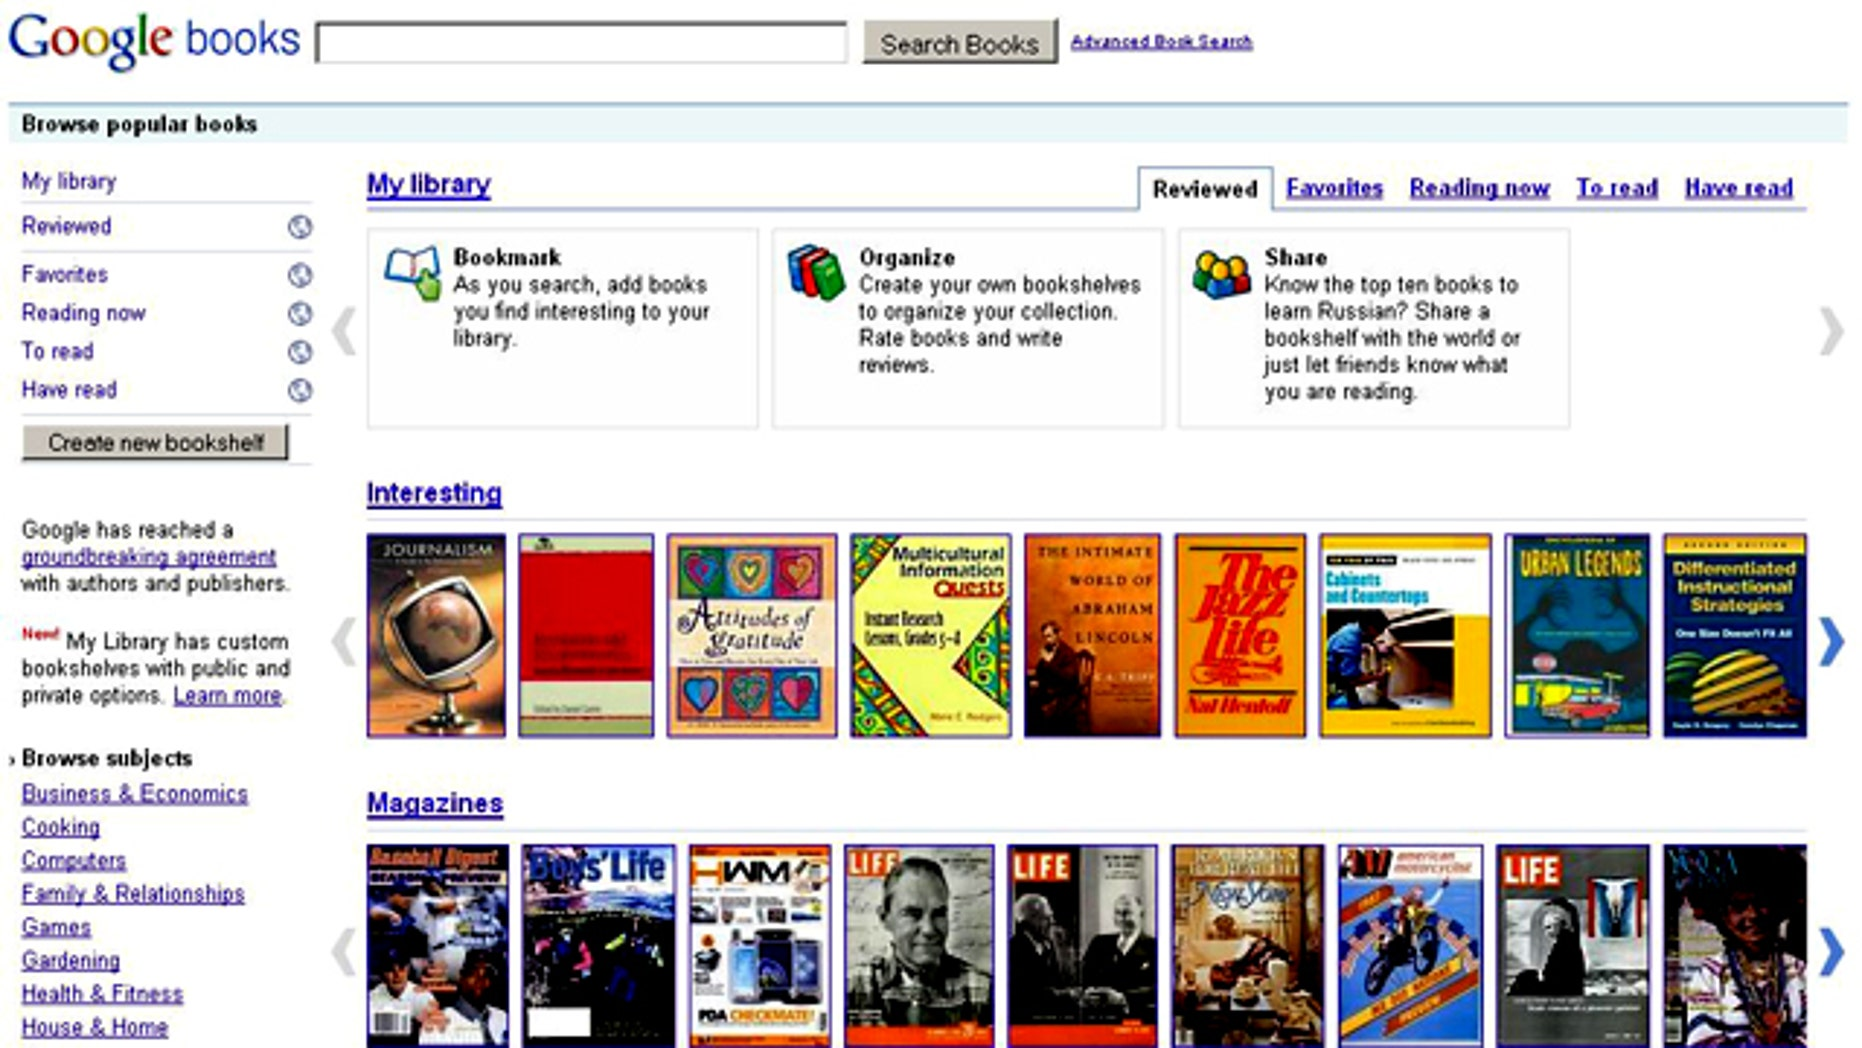 From the Google Books site seen here, the company will start selling books, an attempt to crack into the market of distributing current and backlist works.